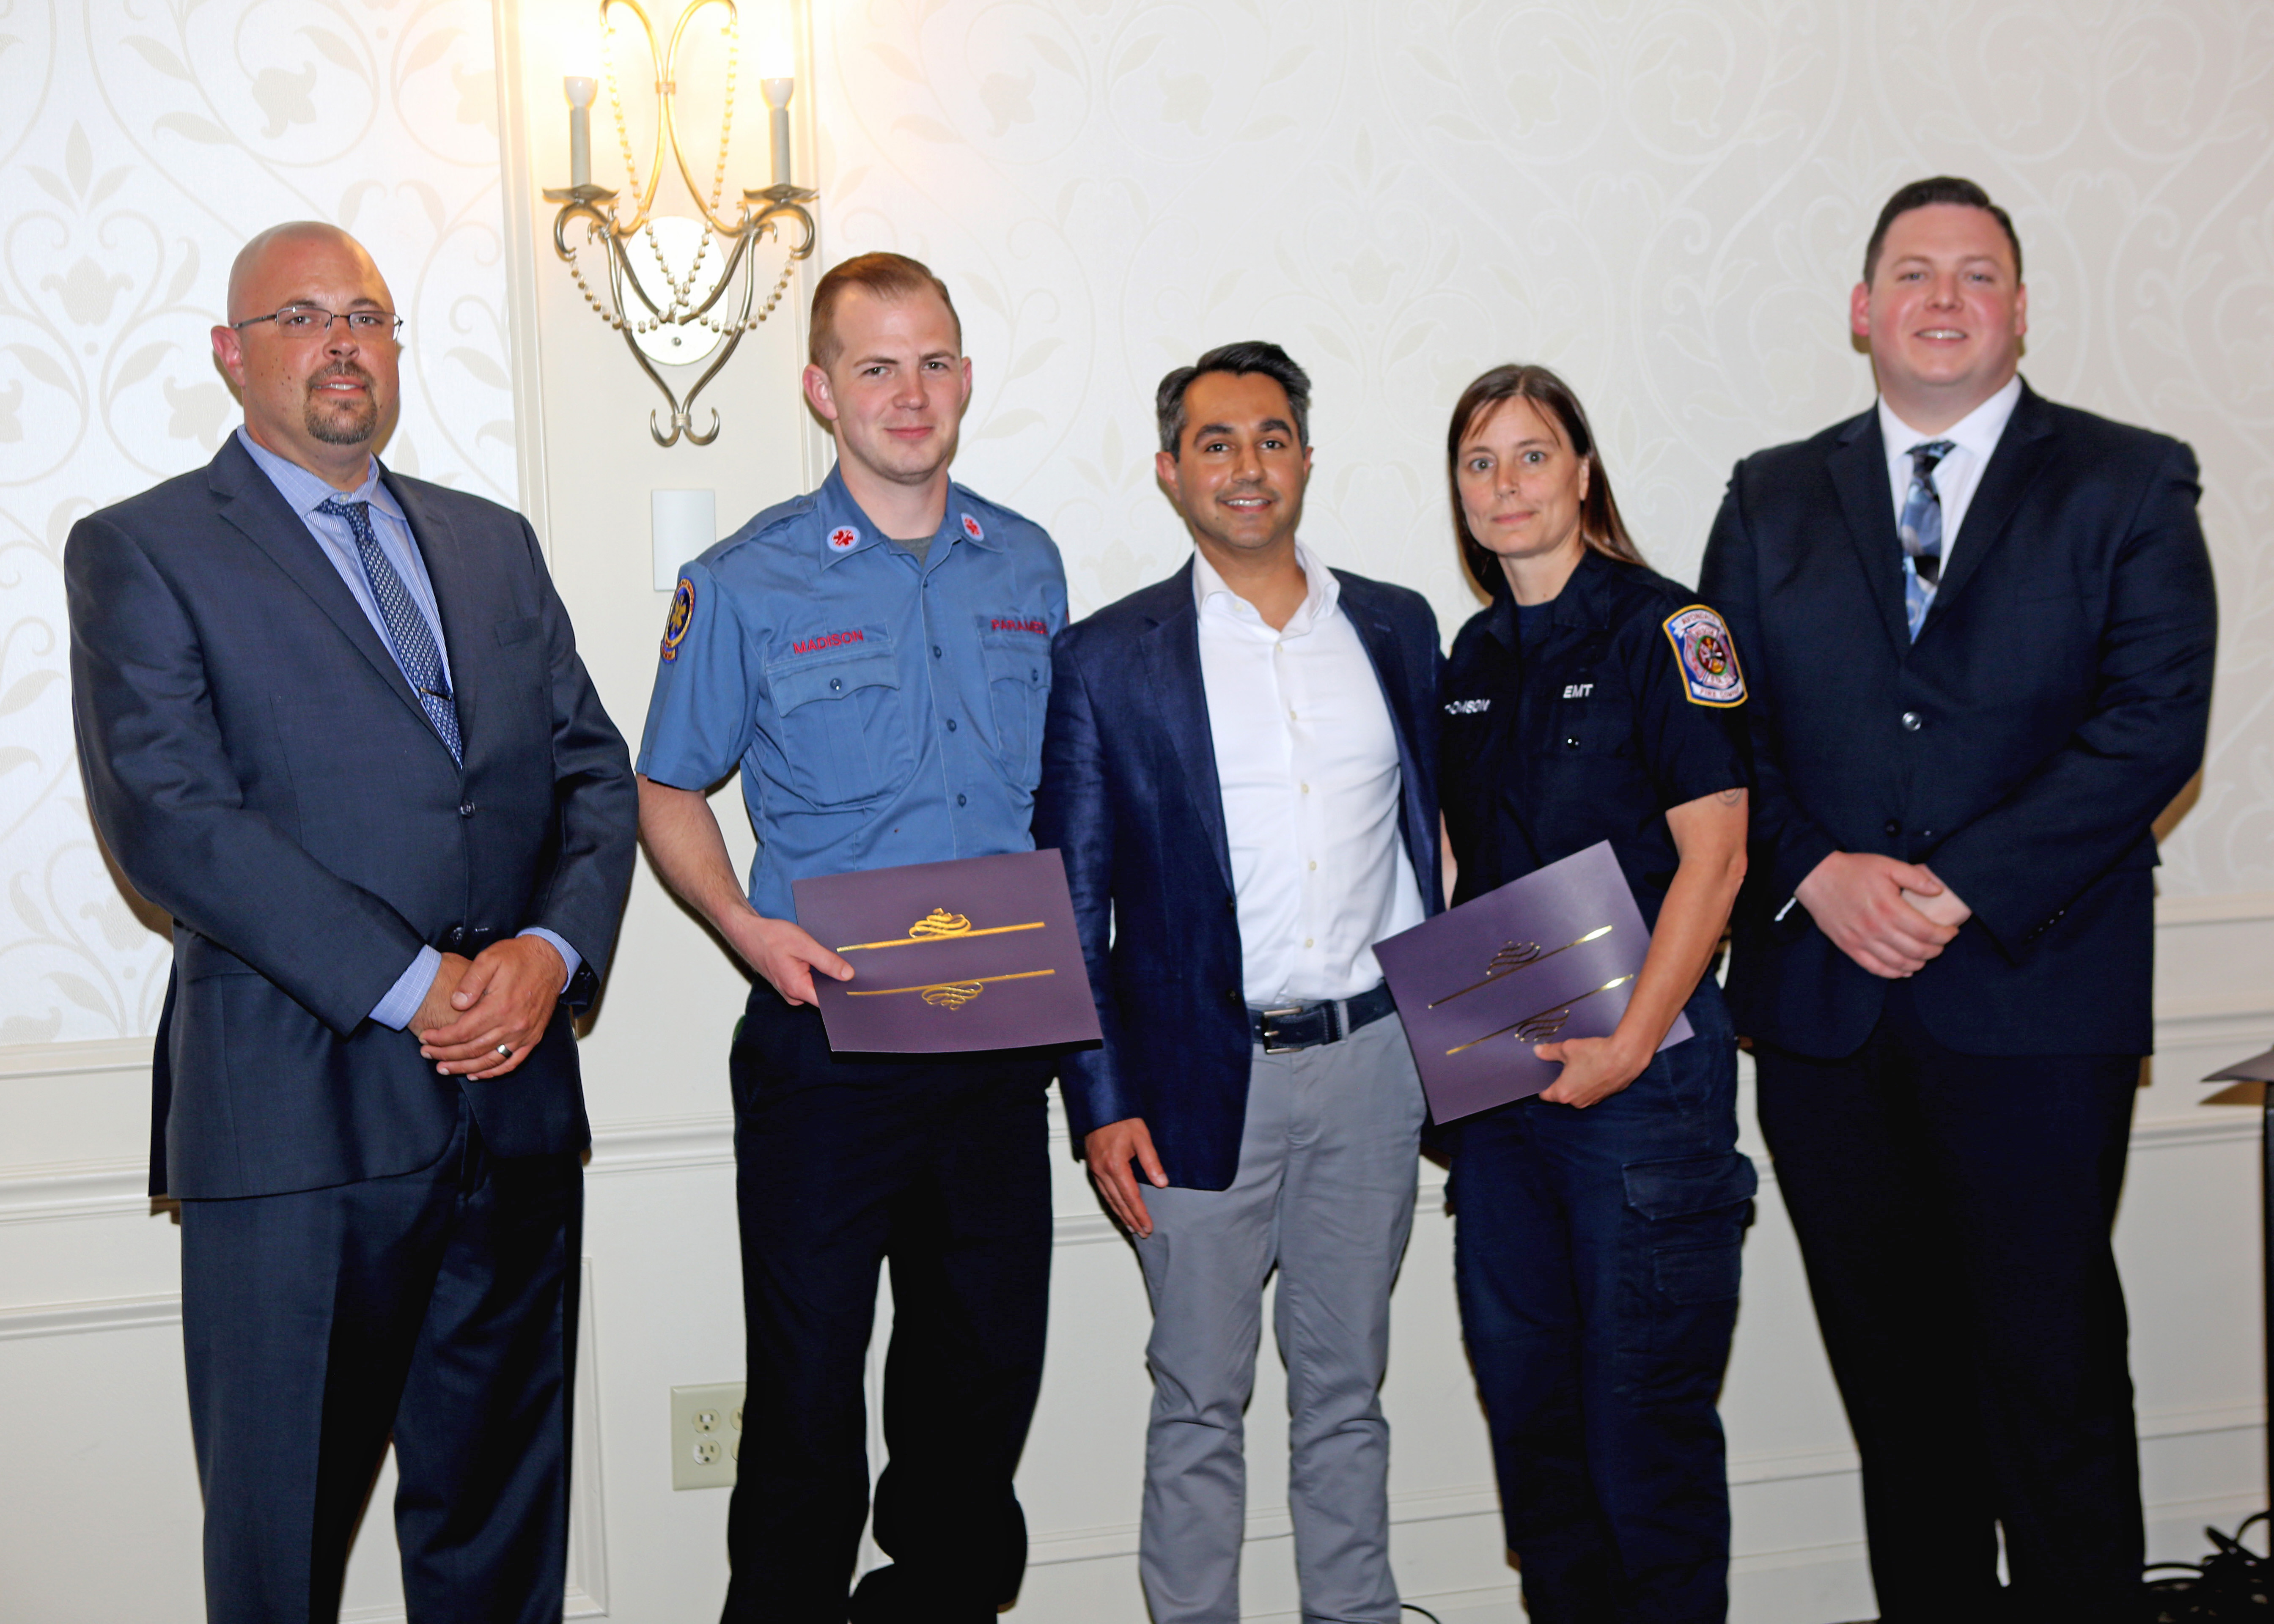 Heroes honored at EMS banquet | Chester County Press